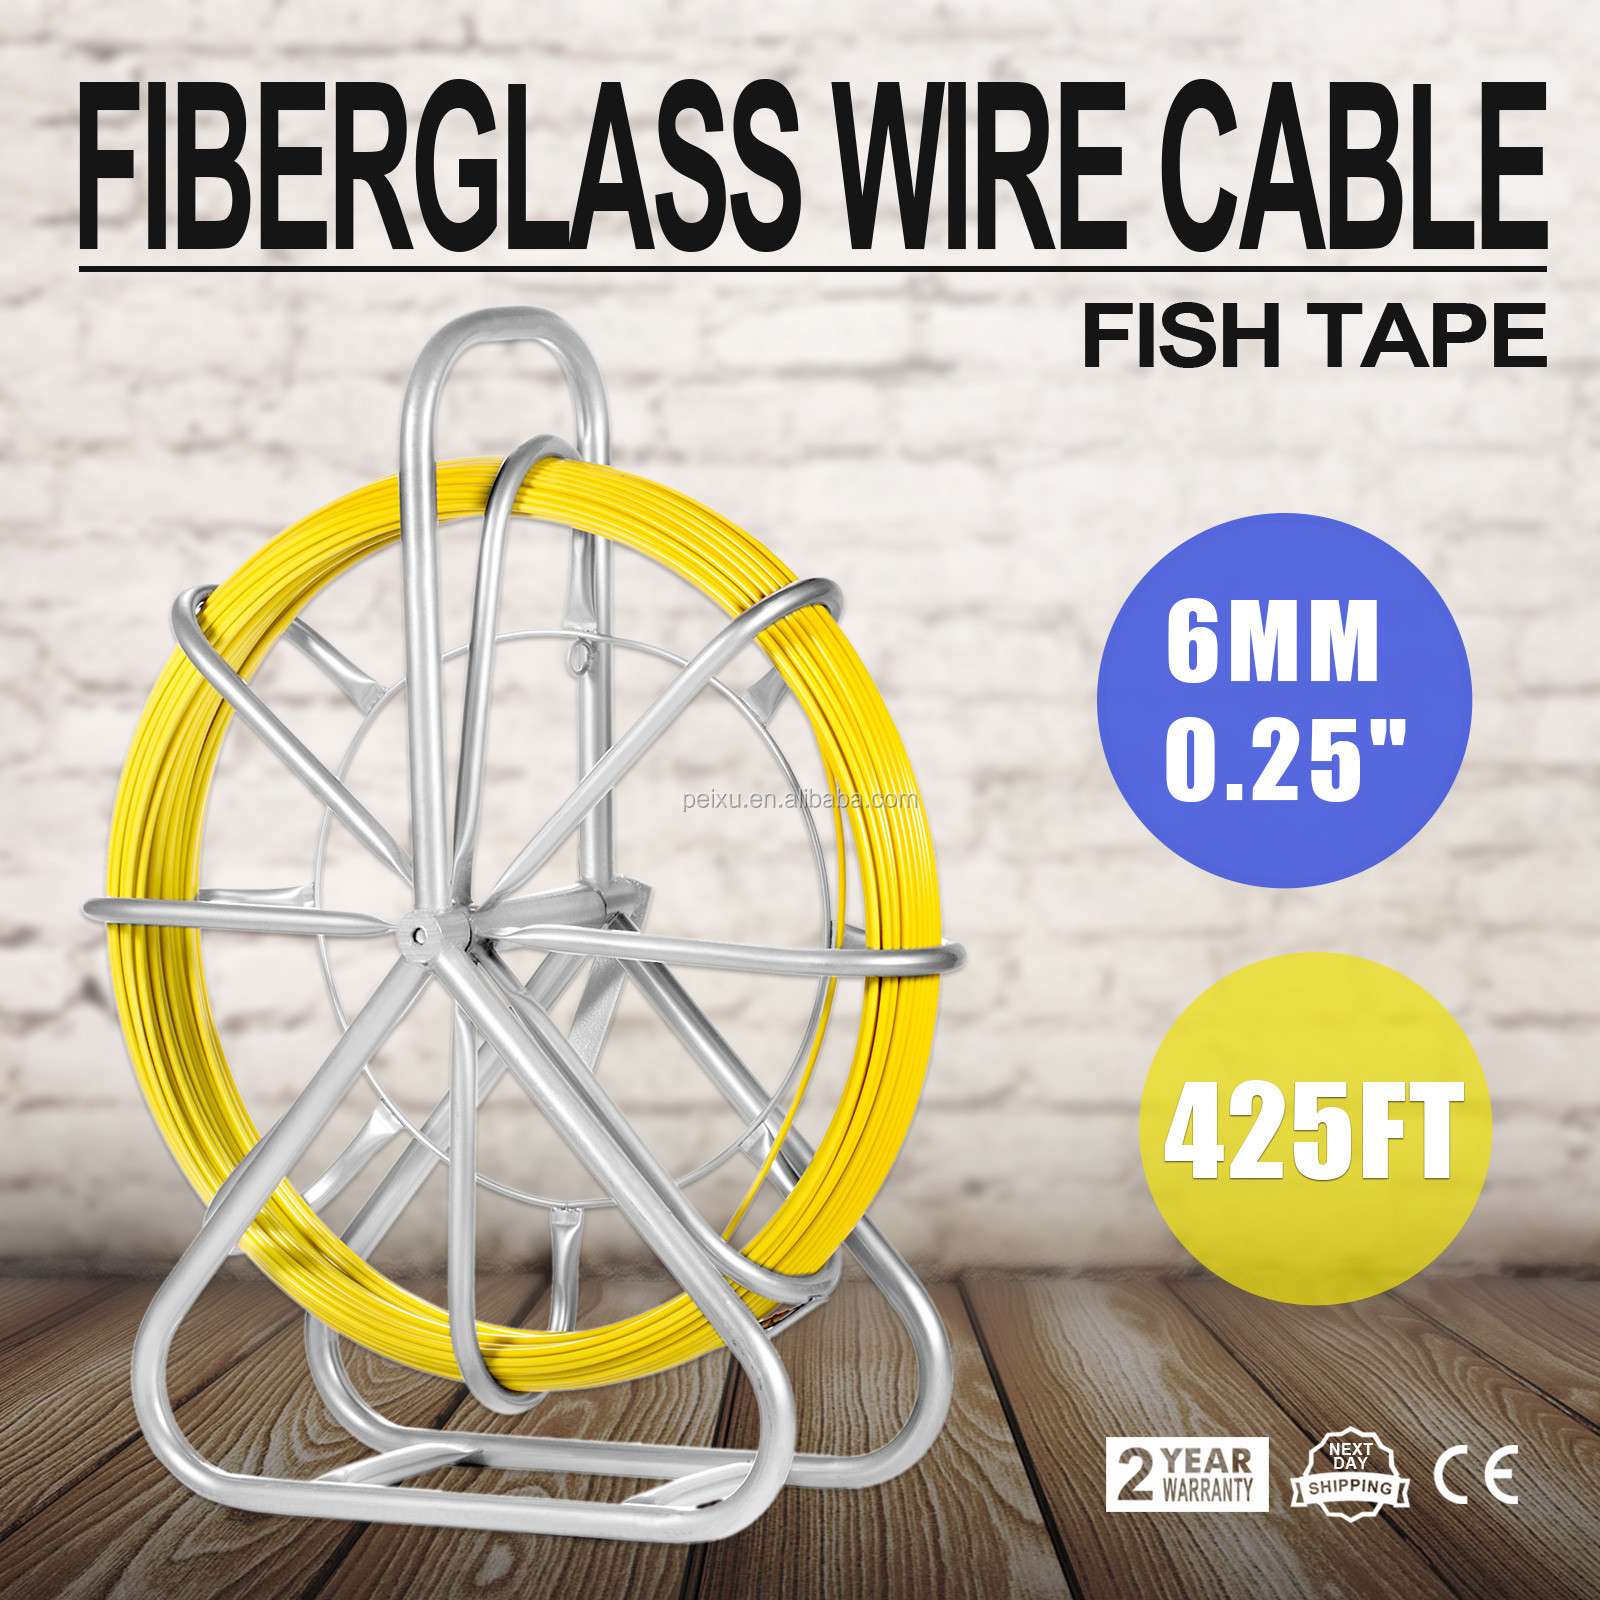 VEVOR Guaranteed 100% Fiber glass copper wire Cable 6mm Fish Tape Running Rod Duct Fish tape 130m